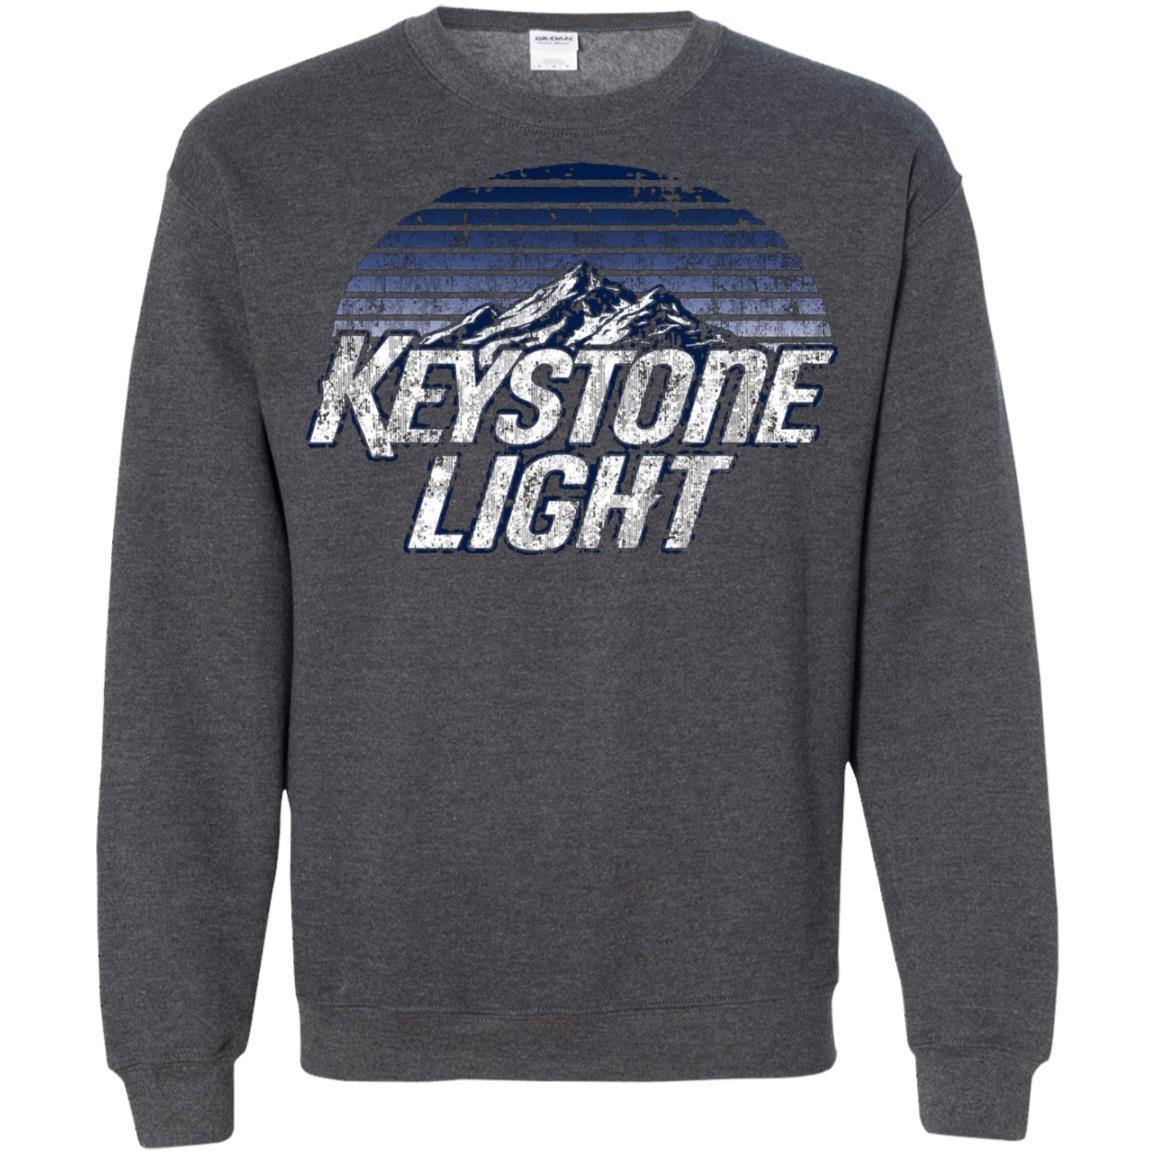 Keystone Light Beer Classic Look - Pullover Sweatshirt Dark Heather / 5XL